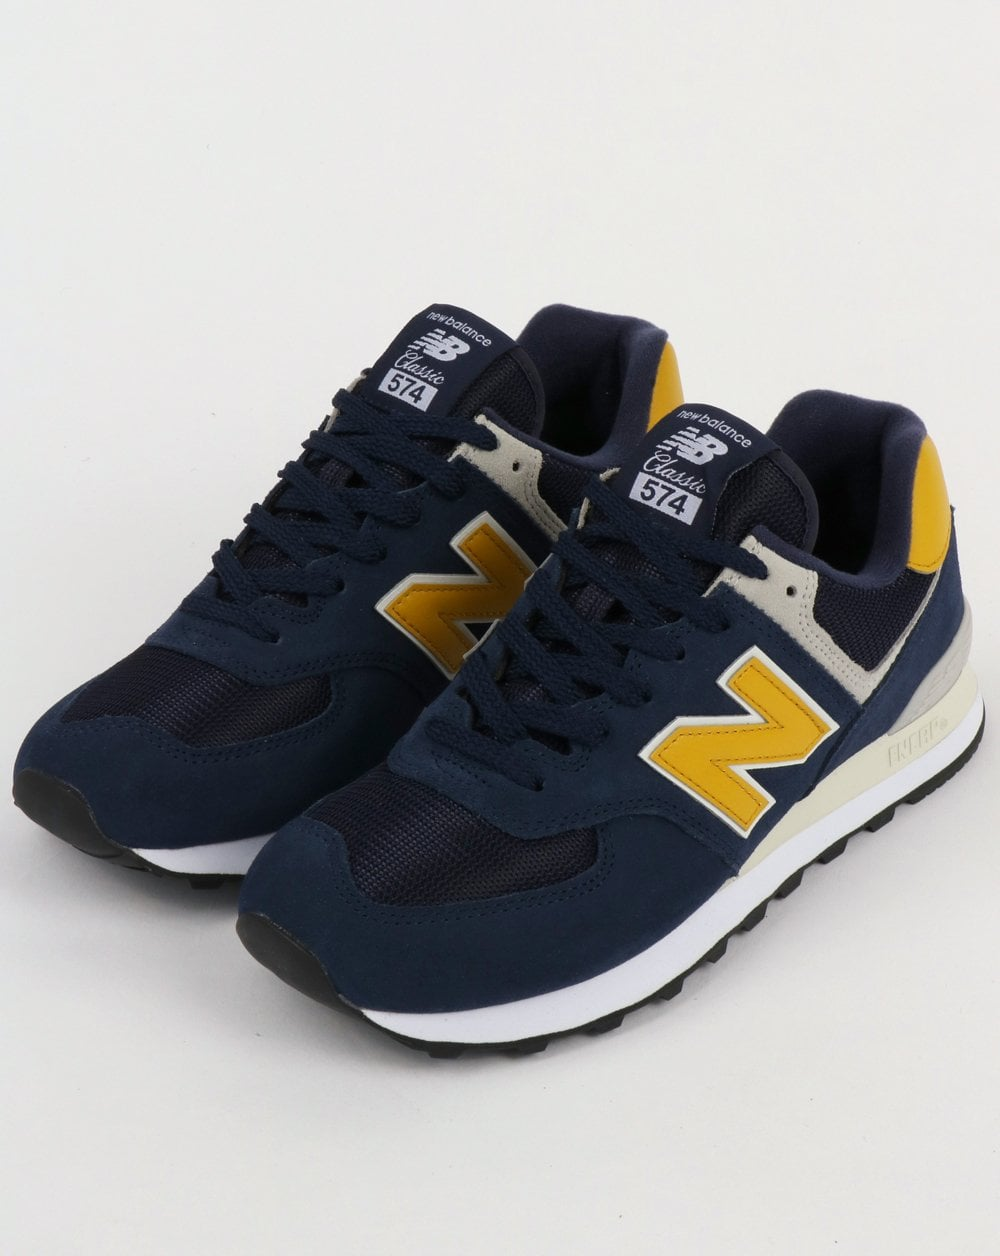 fa4050a95ae10 New Balance 574 Trainers Navy/Yellow,blue,running,shoes,suede,mesh